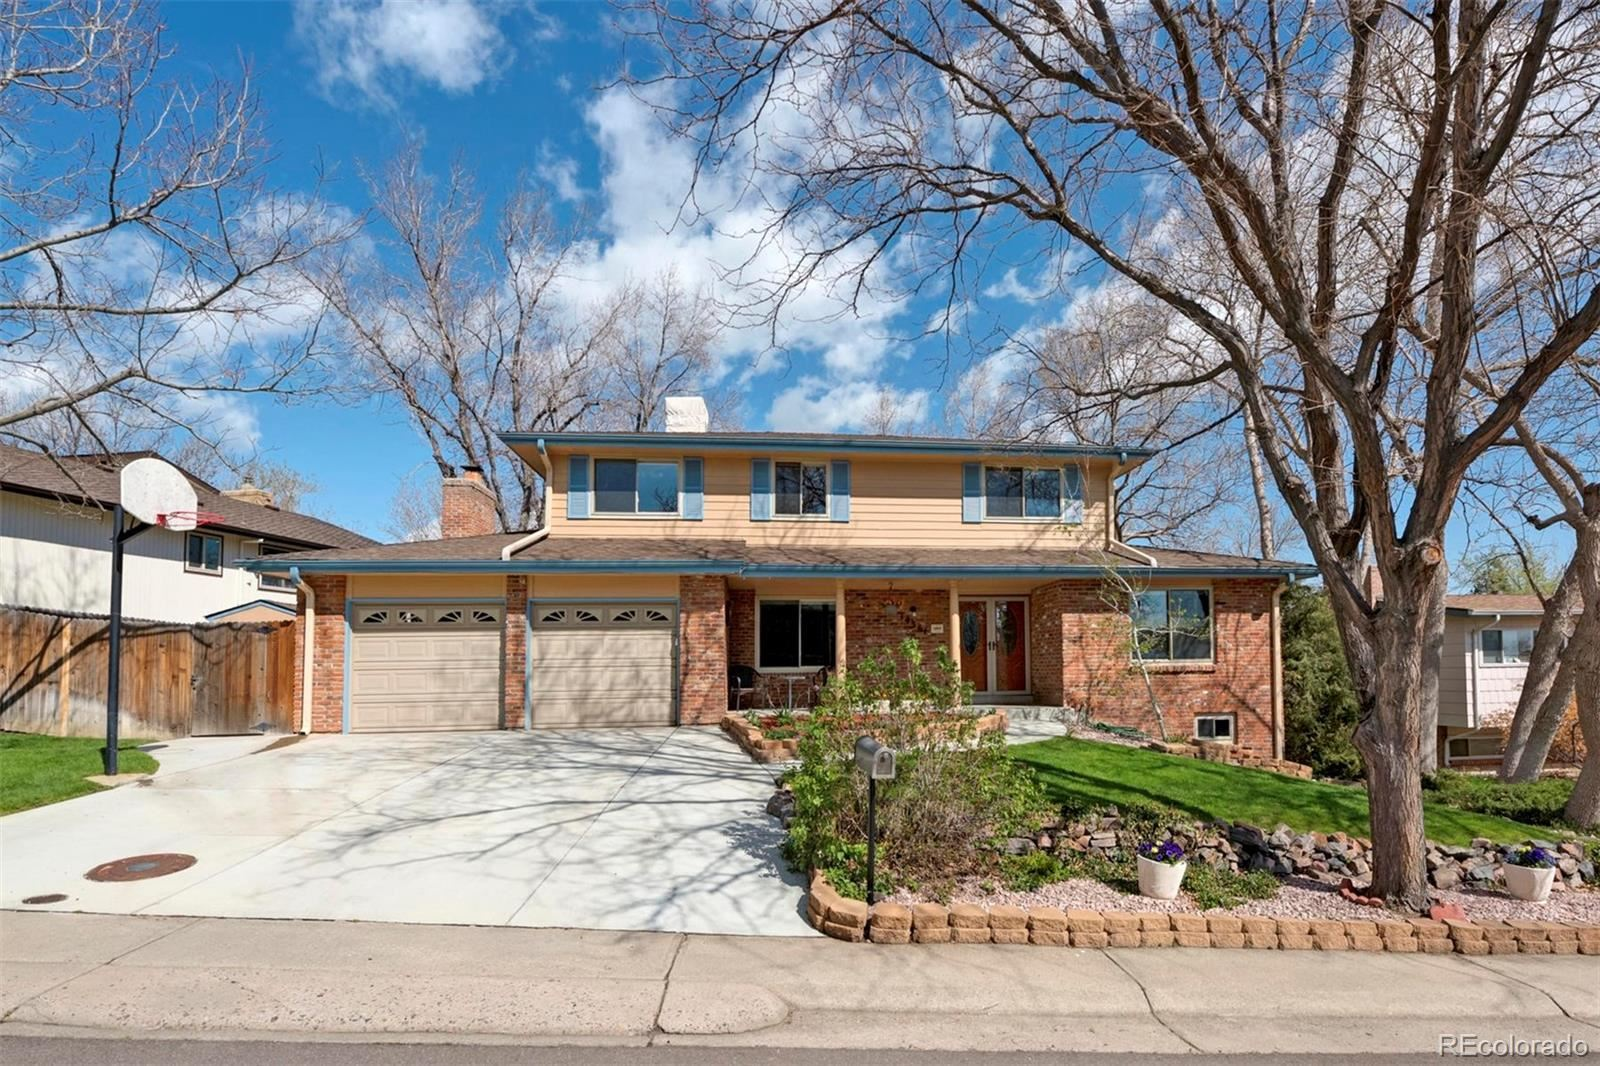 14361 W 2nd Place, Golden, CO 80401 - #: 3967877